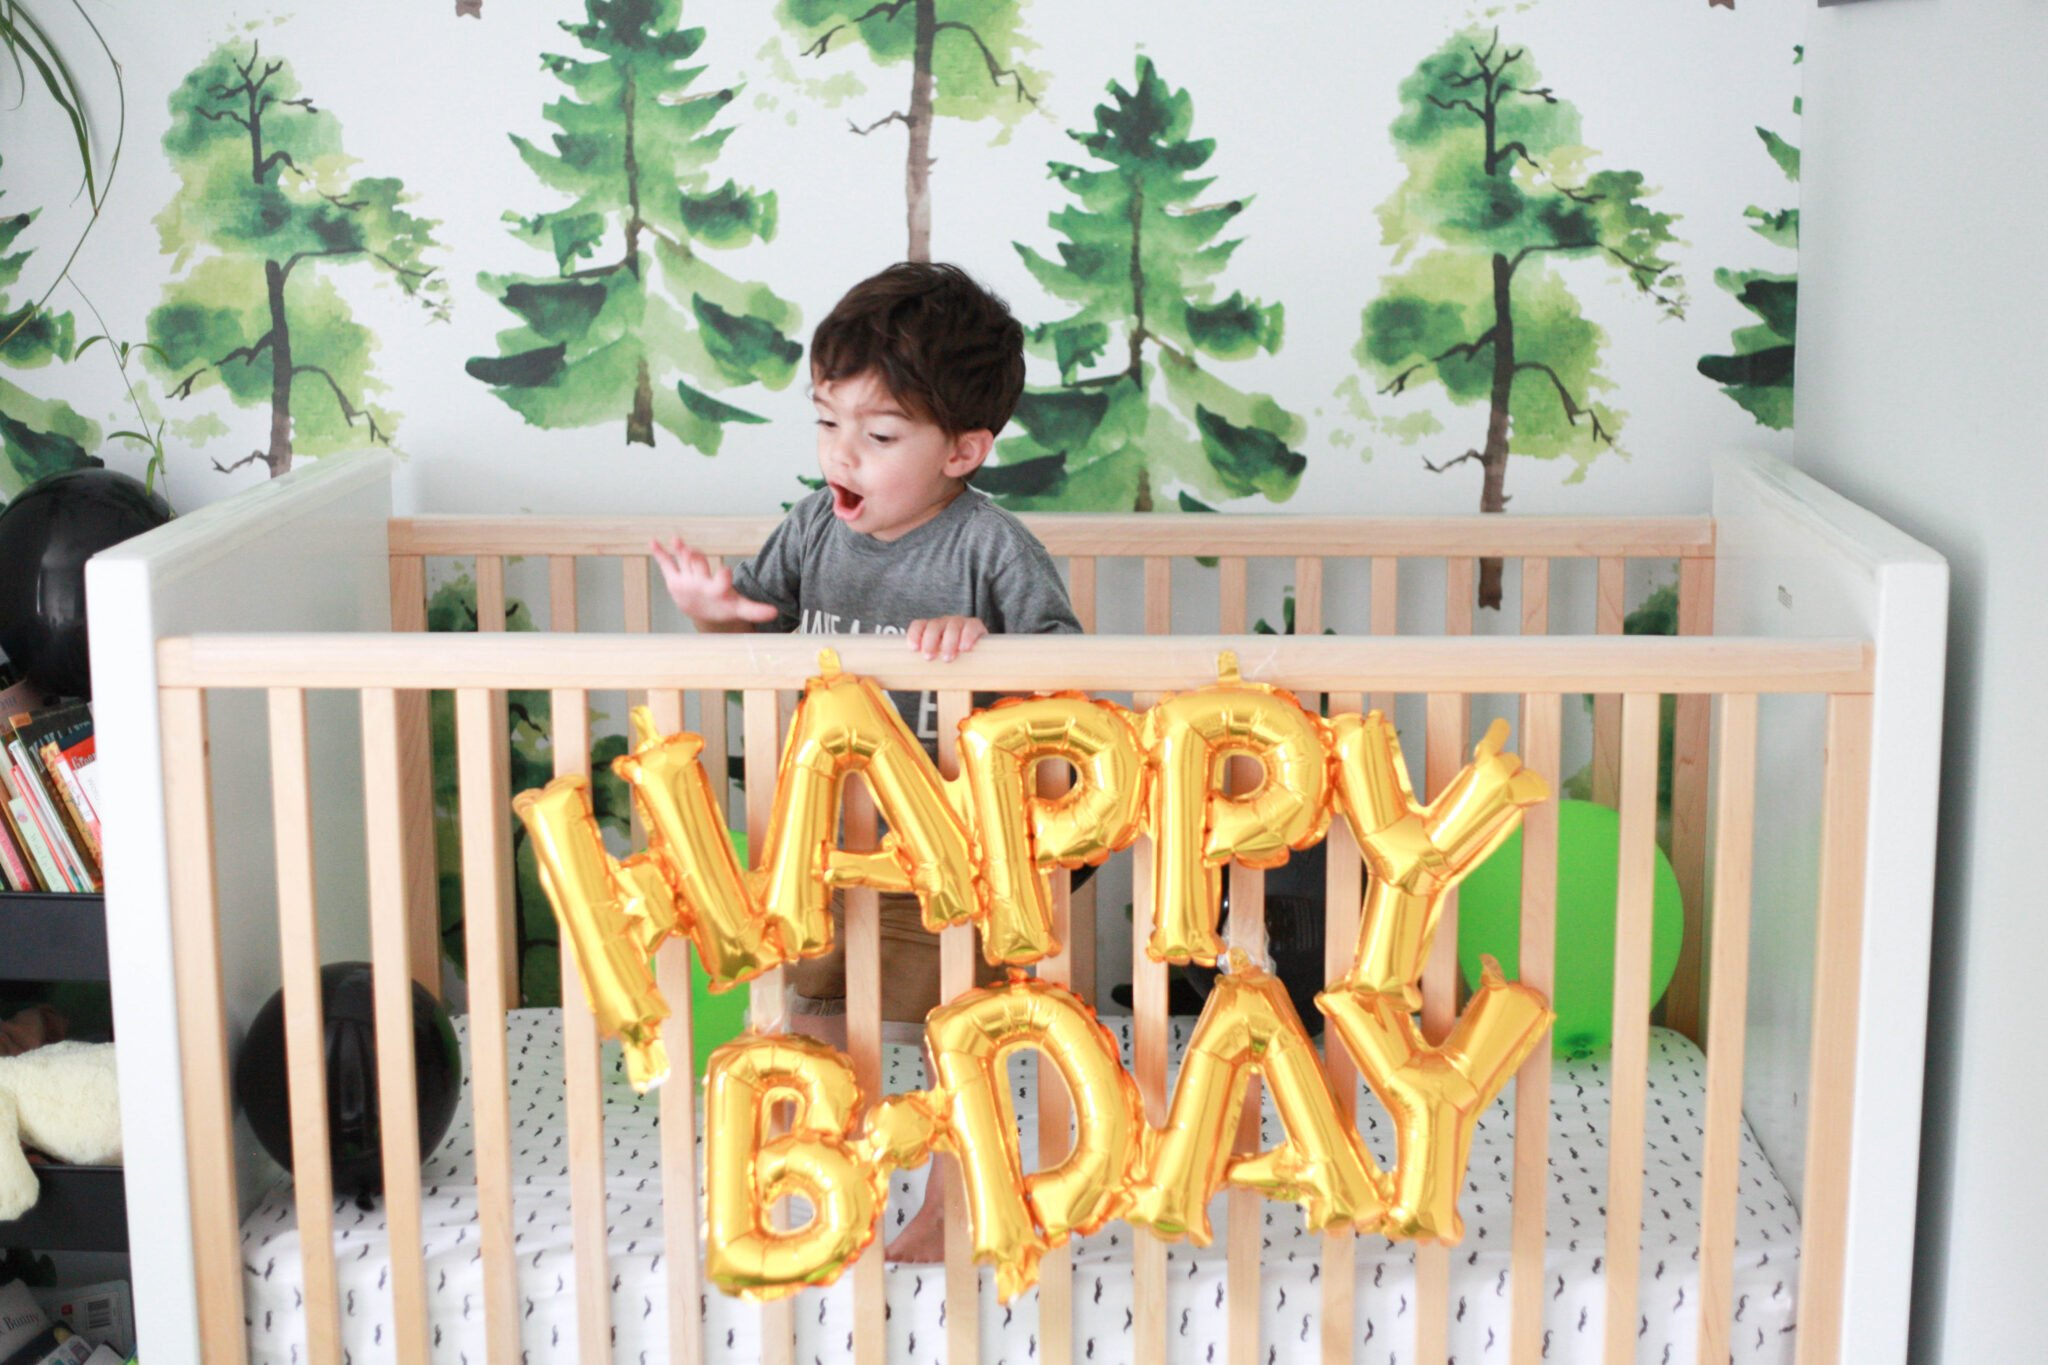 Balloons in the crib is a great way to begin celebrating your 2 year old's birthday!